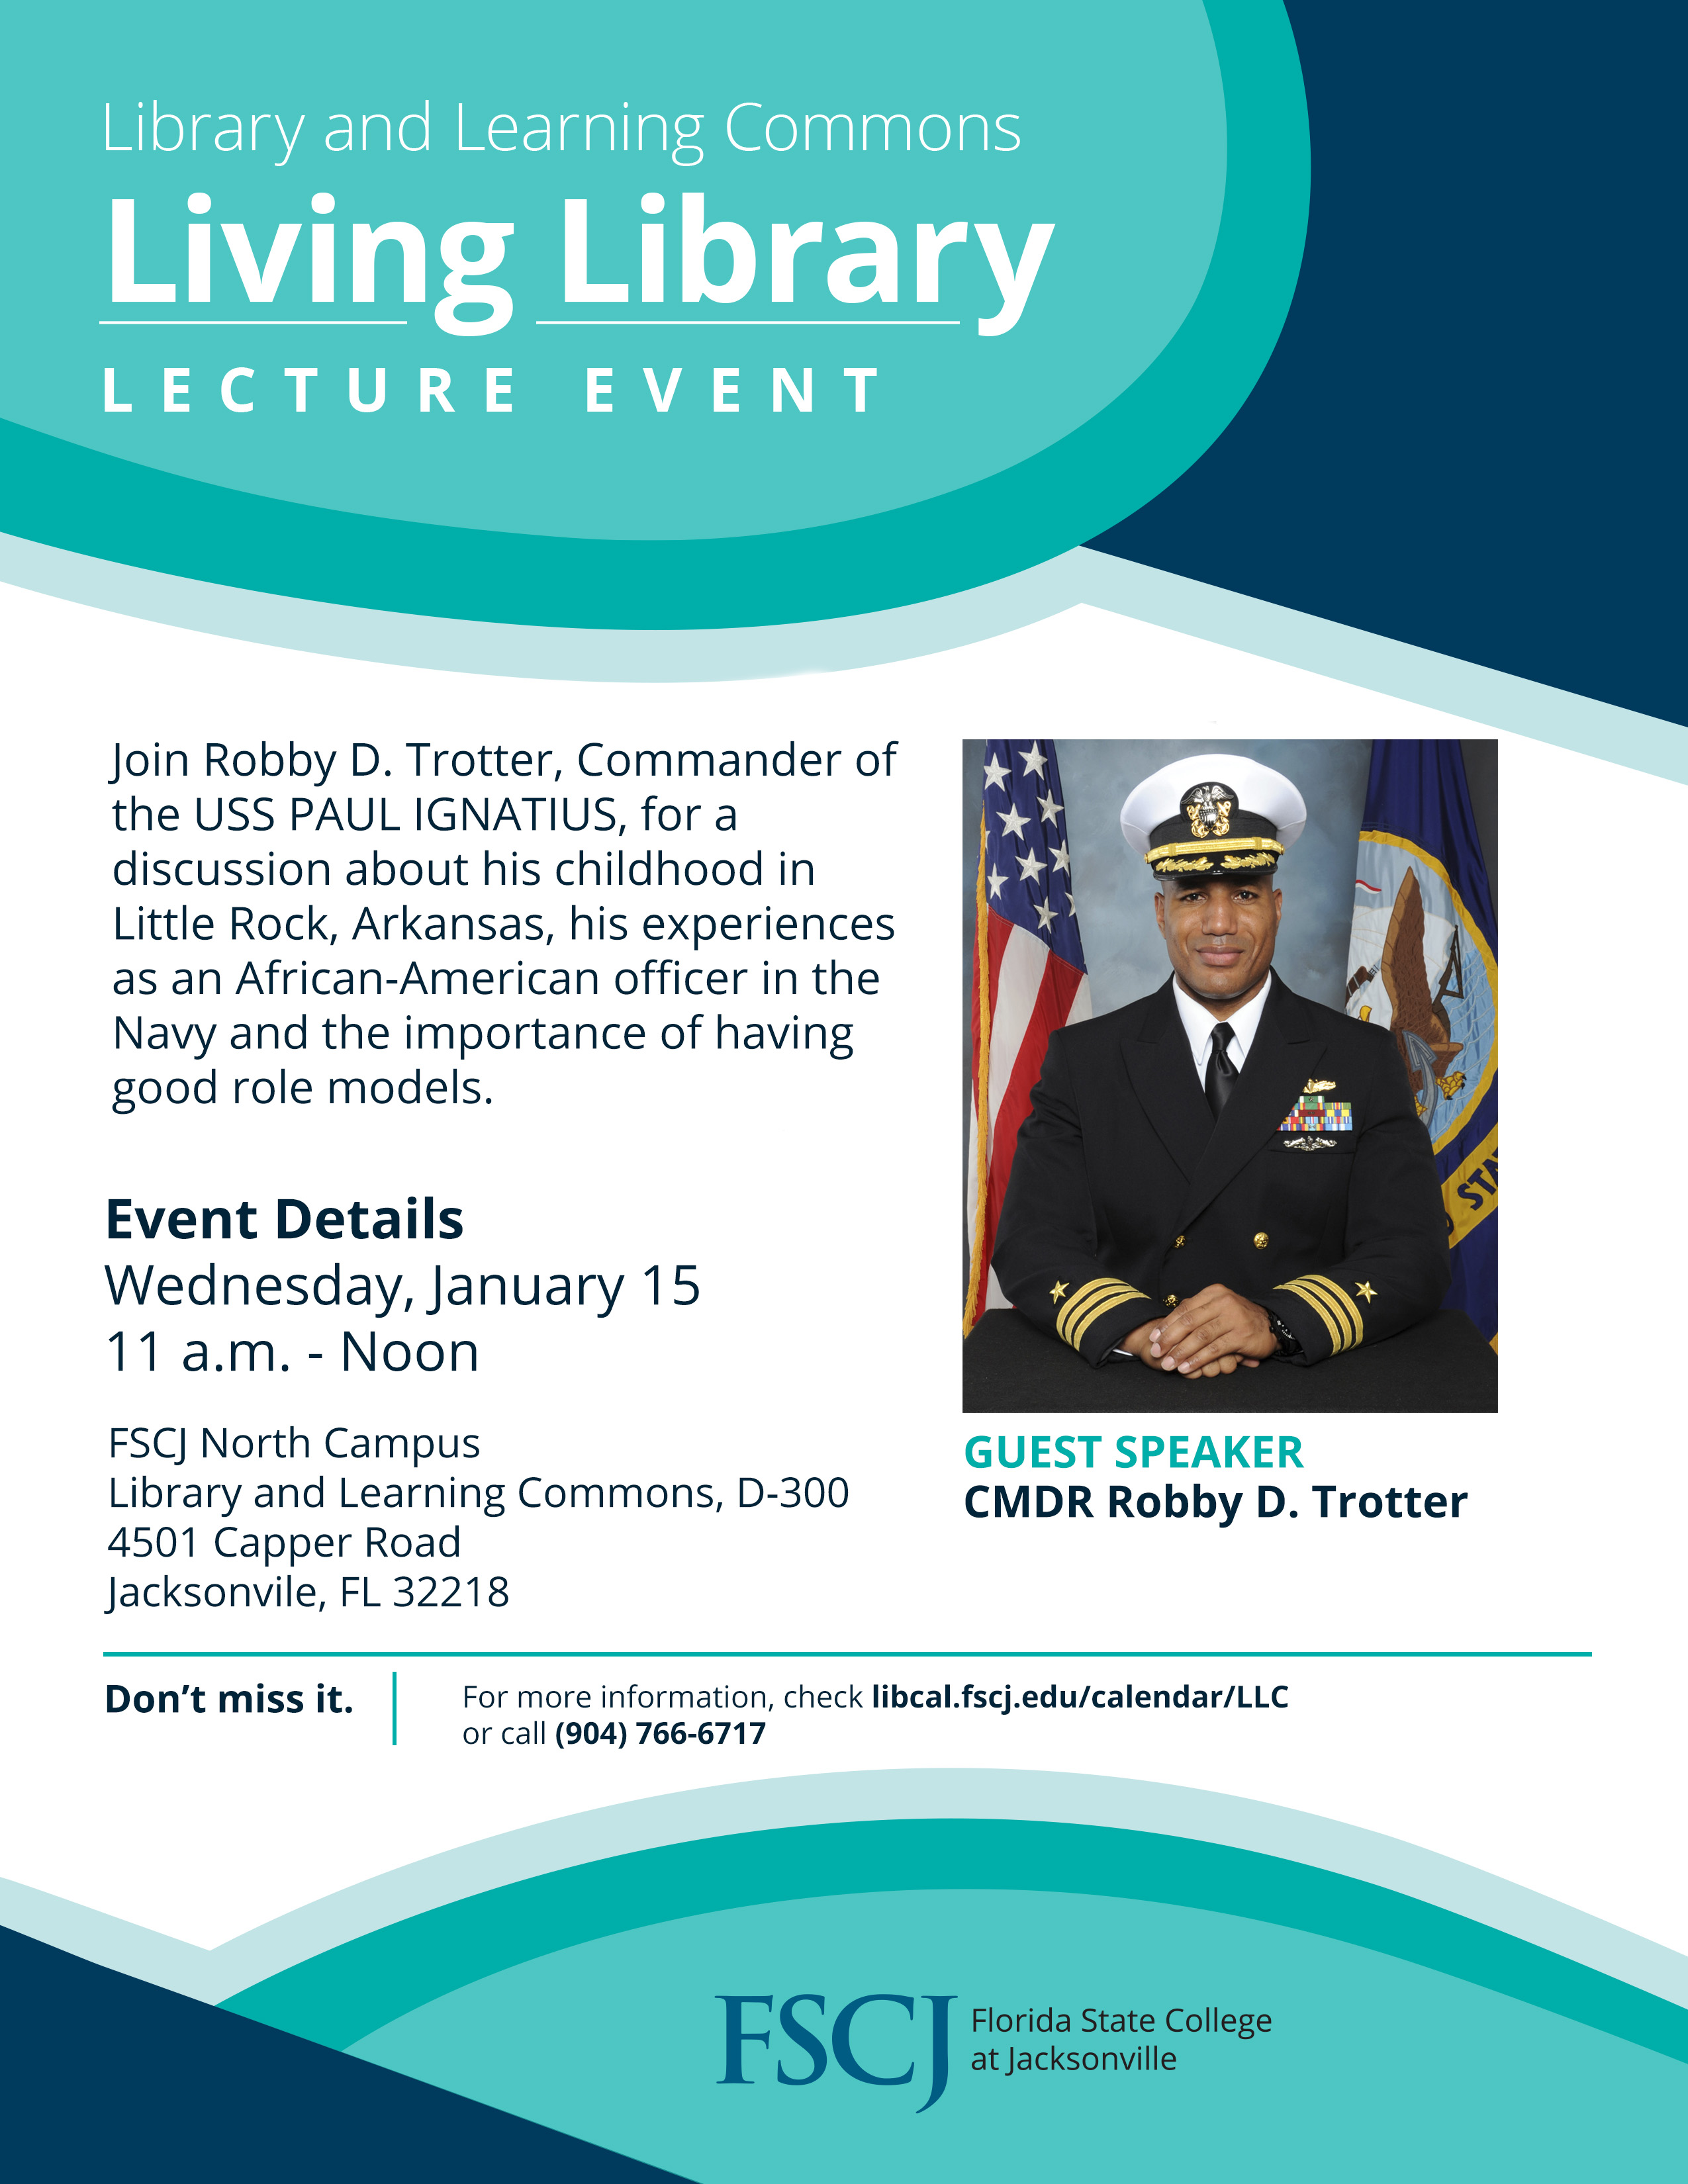 Living Library Lecture Series featuring CMDR Robby Trotter